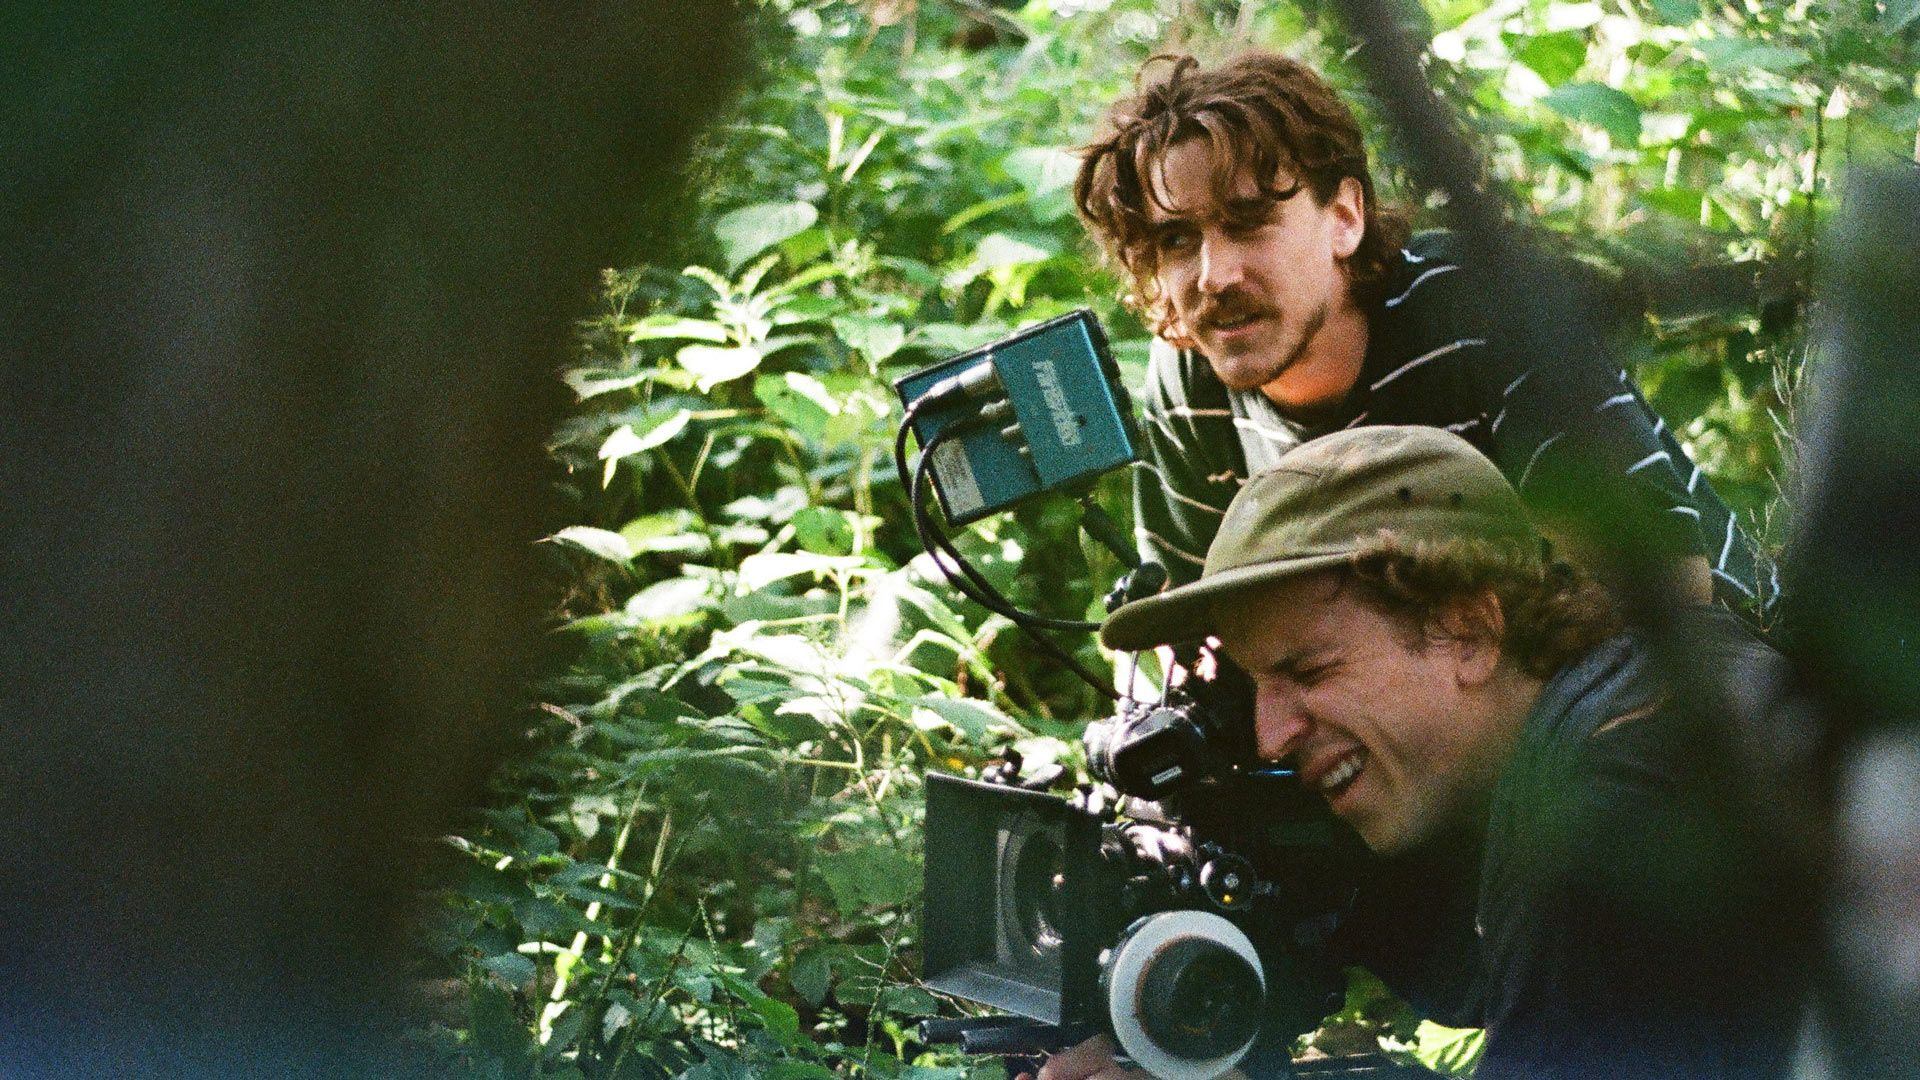 Vincent Ruel-Cote and Marco Gilbert from Les Gamins filming with camera in the jungle